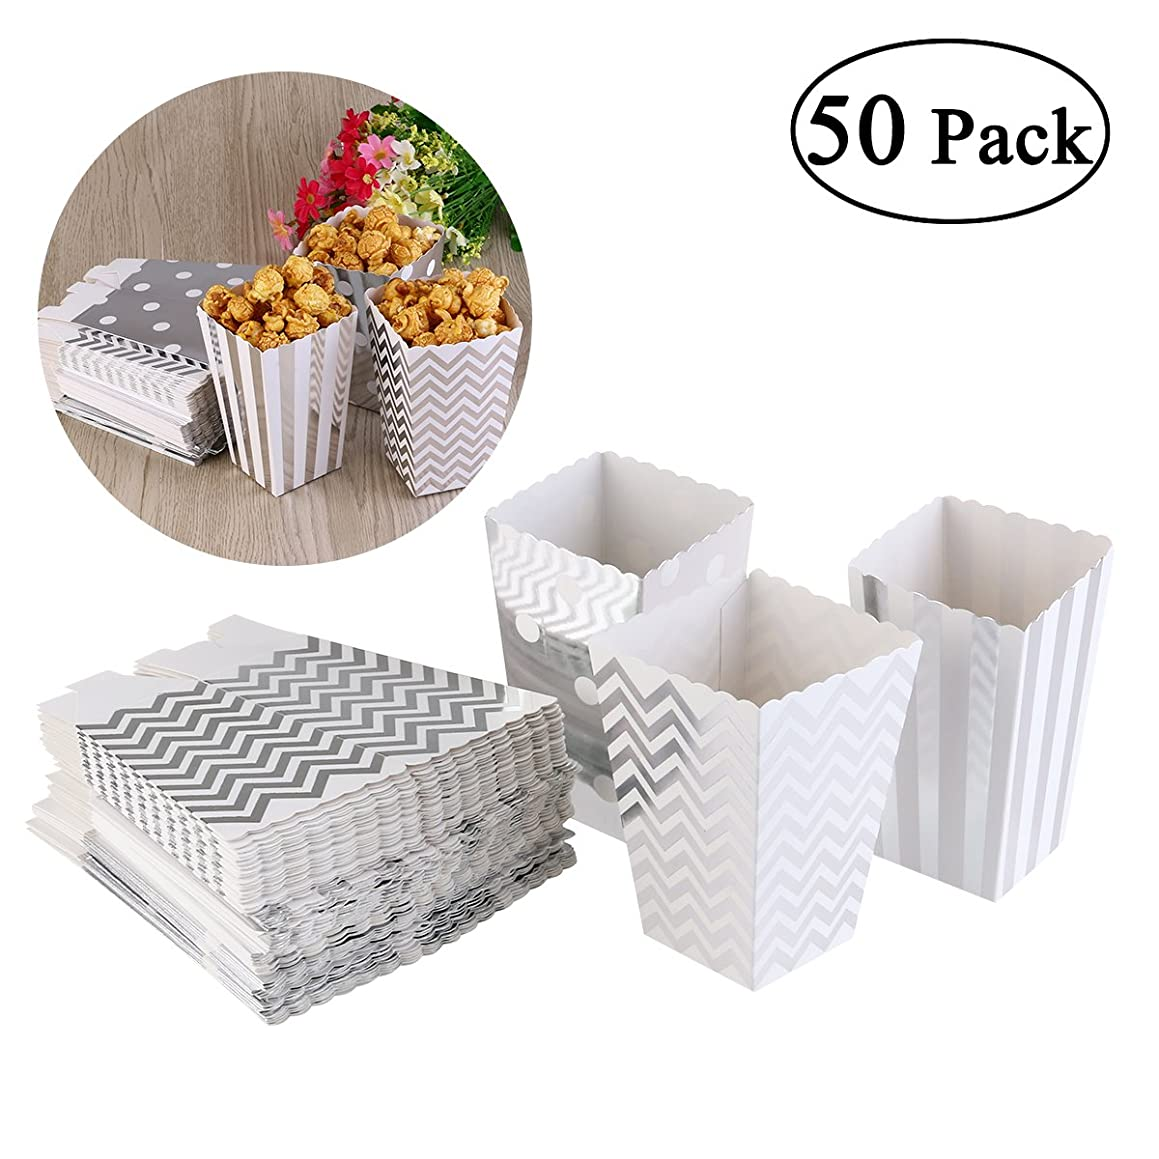 NUOLUX 50pcs Popcorn Boxes Yellow Design Trio Miniature Scalloped Edge Cardboard Party Candy Container Treat Cartons (Silver)